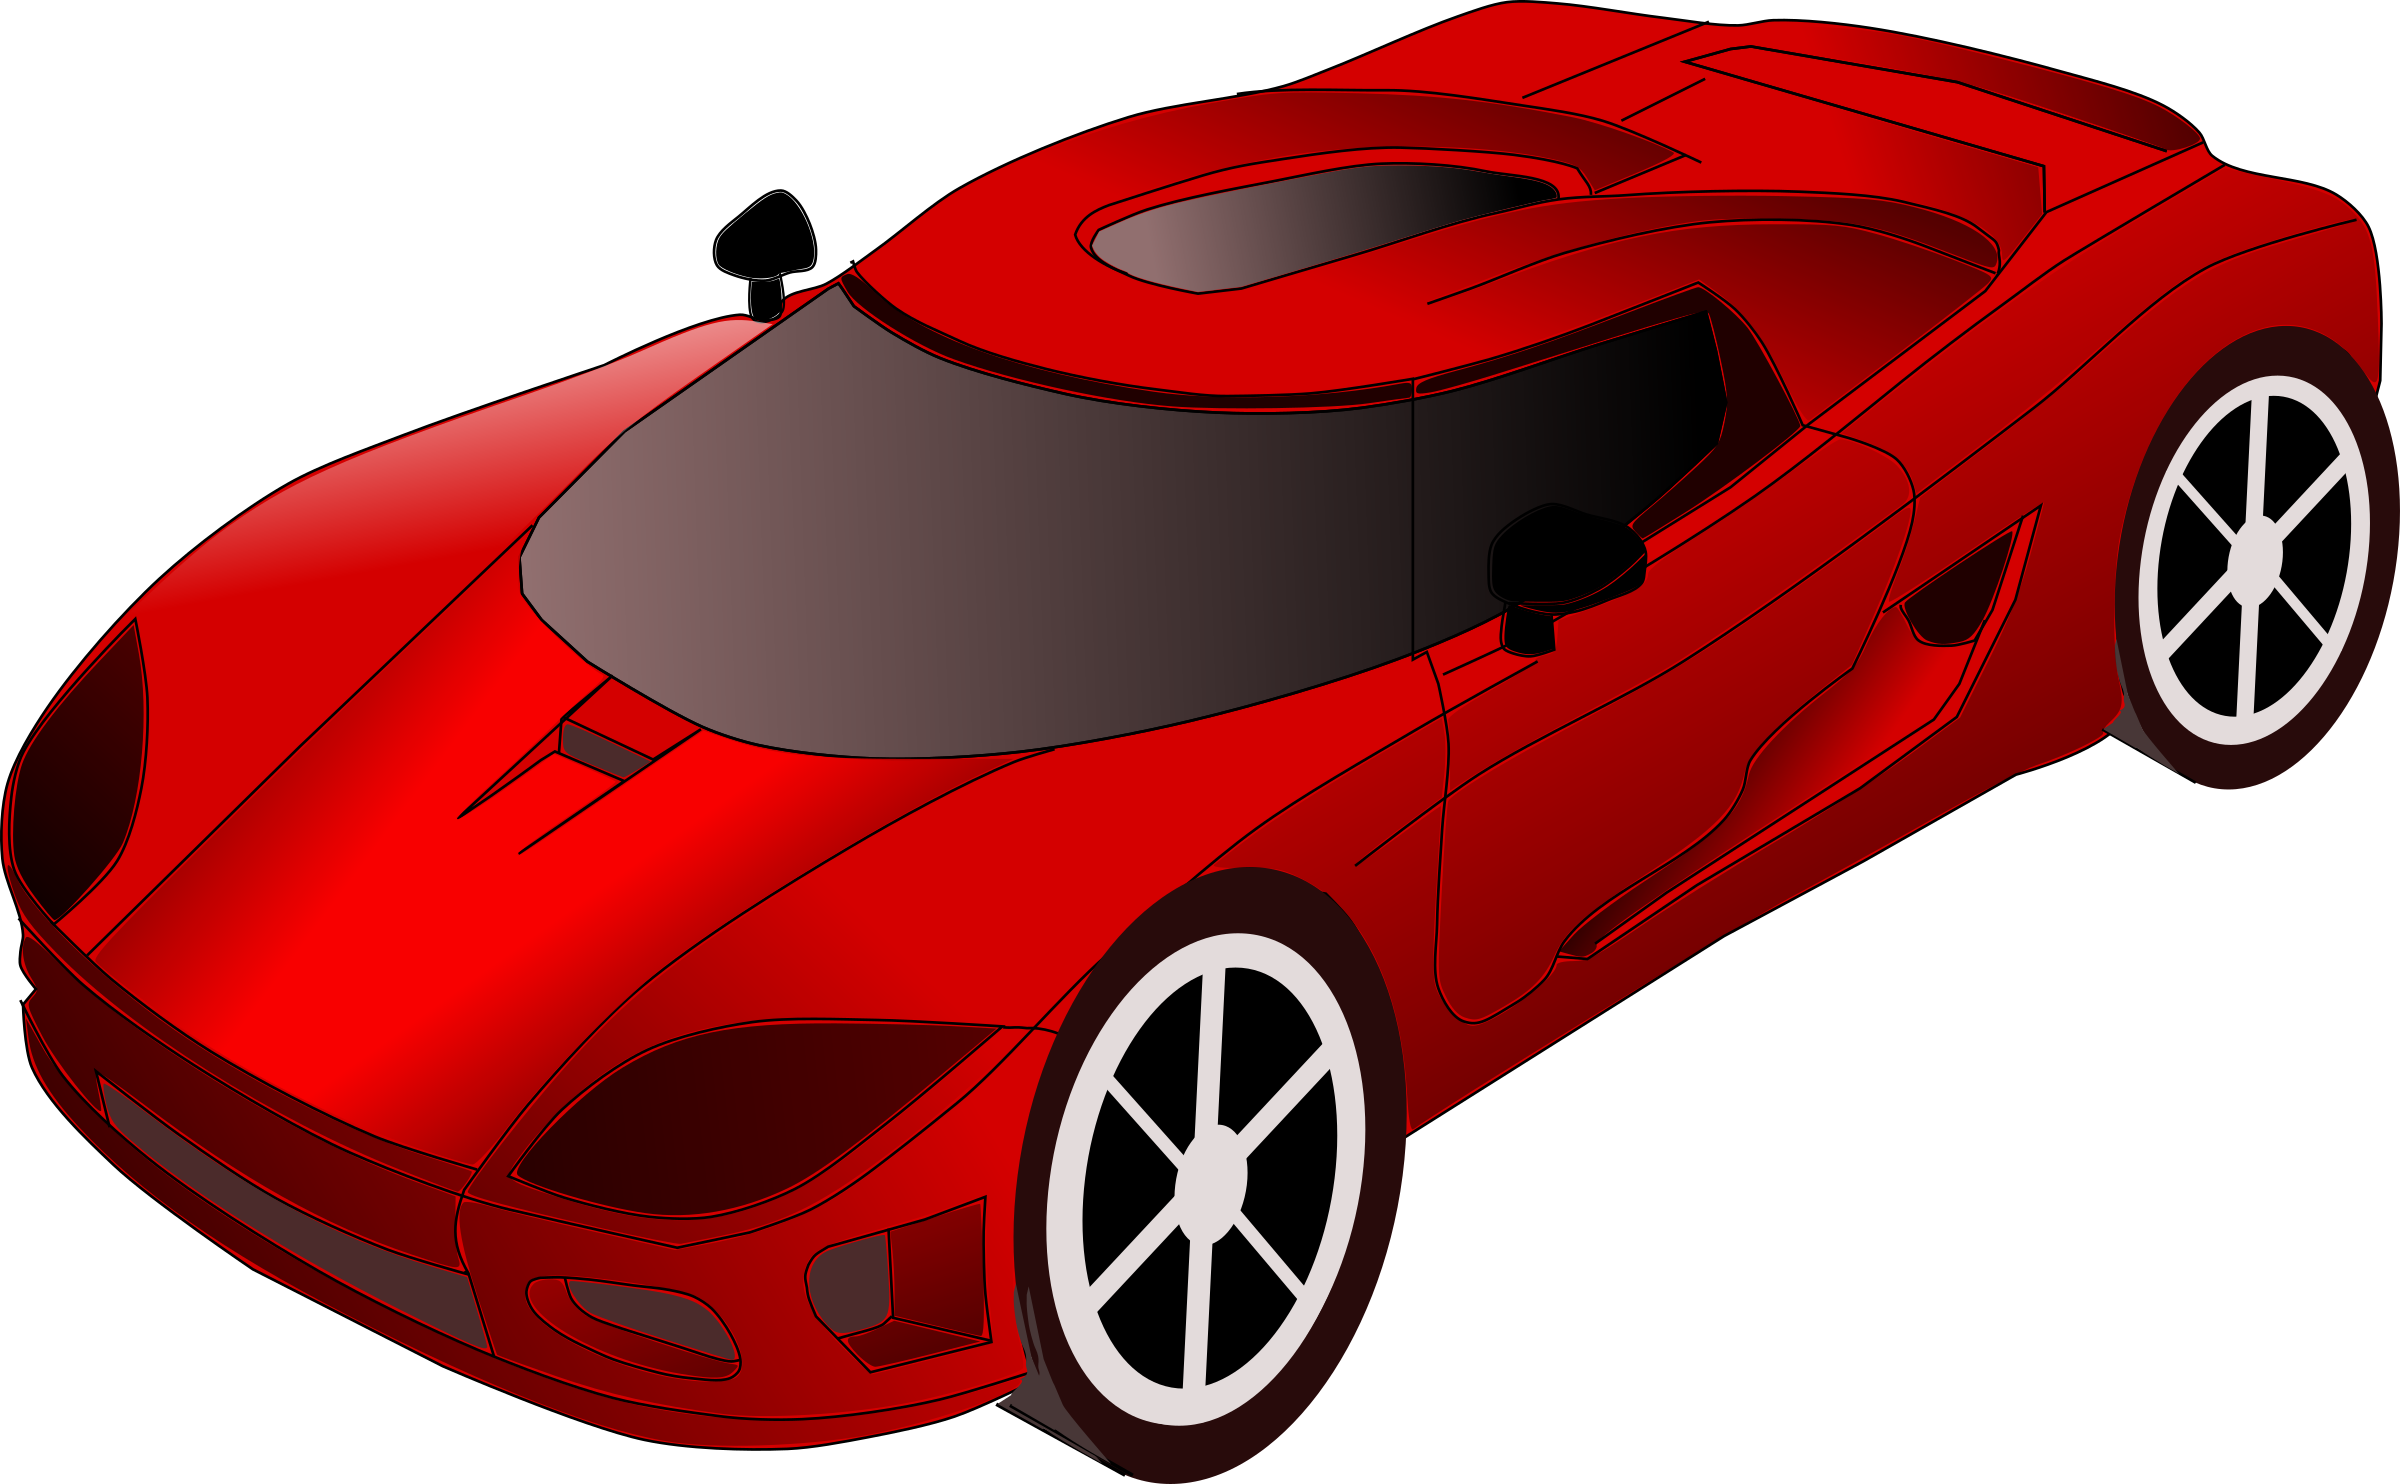 New Car Clipart Hd.